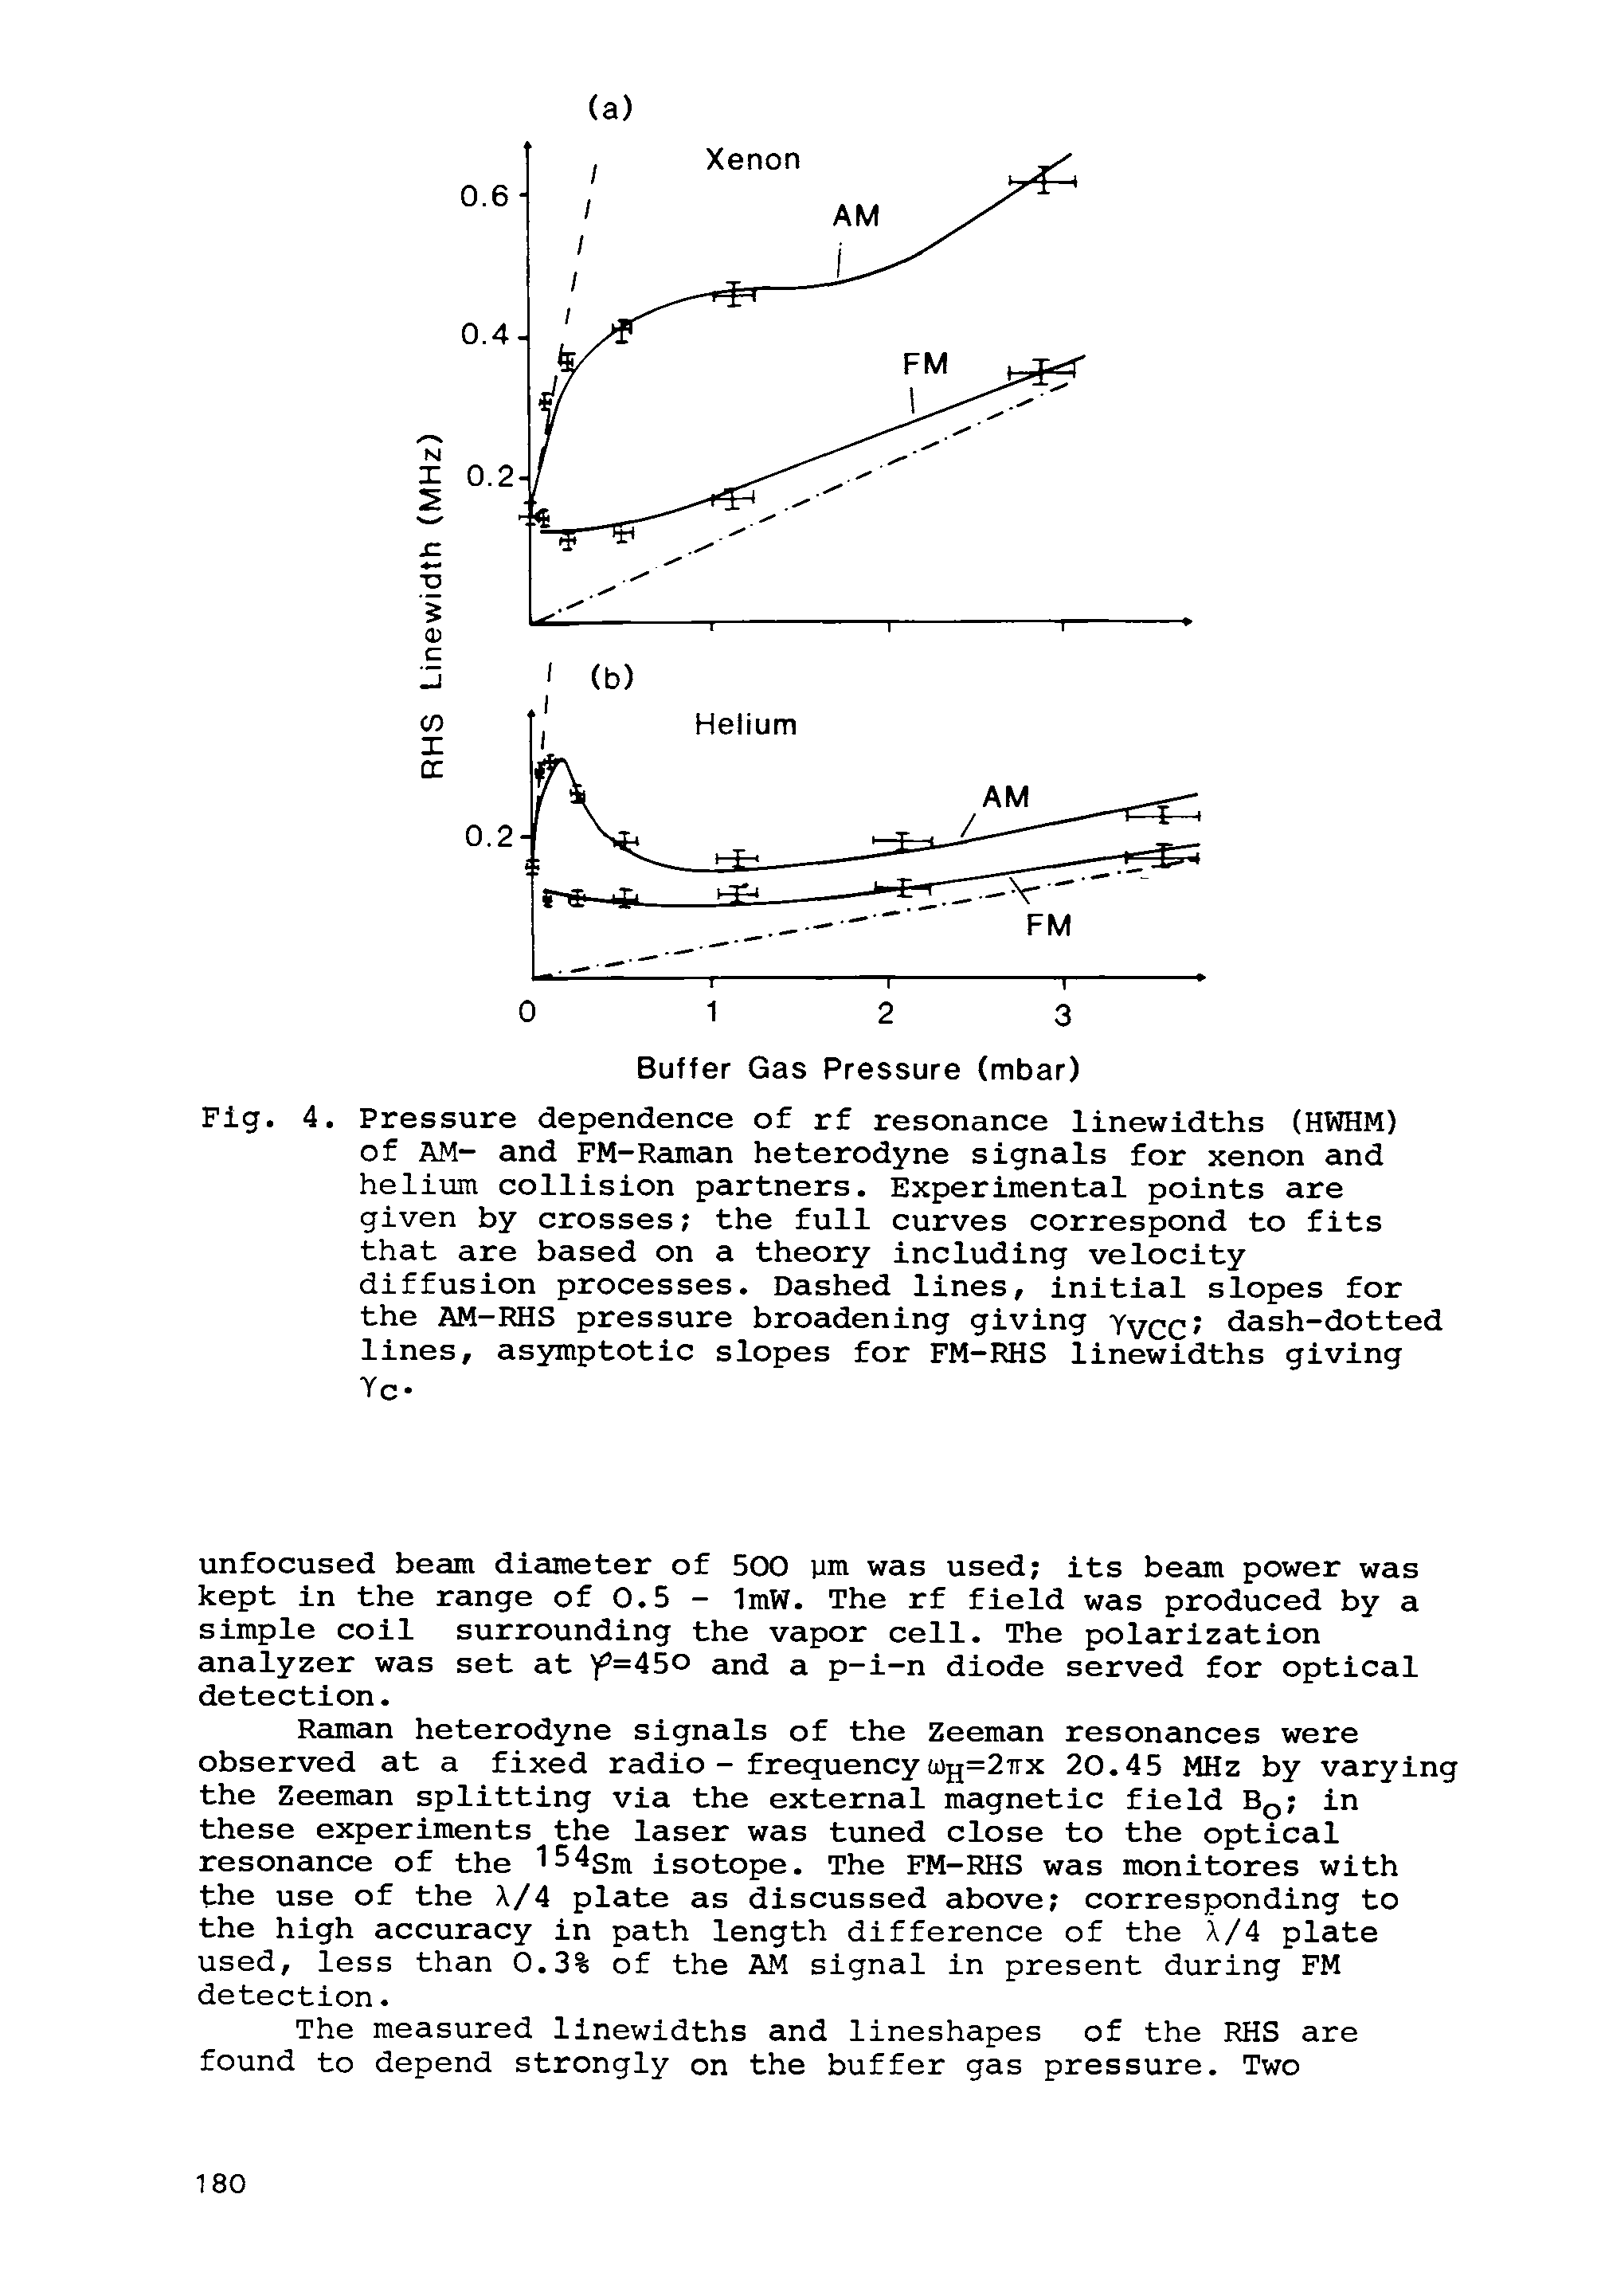 Fig. 4. Pressure dependence of rf resonance linewidths (HWHM) of AM- and FM-Raman heterodyne signals for xenon and helium collision partners. Experimental points are given by crosses the full curves correspond to fits that are based on a theory including velocity diffusion processes. Dashed lines, initial slopes for the AM-RHS pressure broadening giving YvcC dash-dotted lines, asymptotic slopes for FM-RHS linewidths giving Yc-...